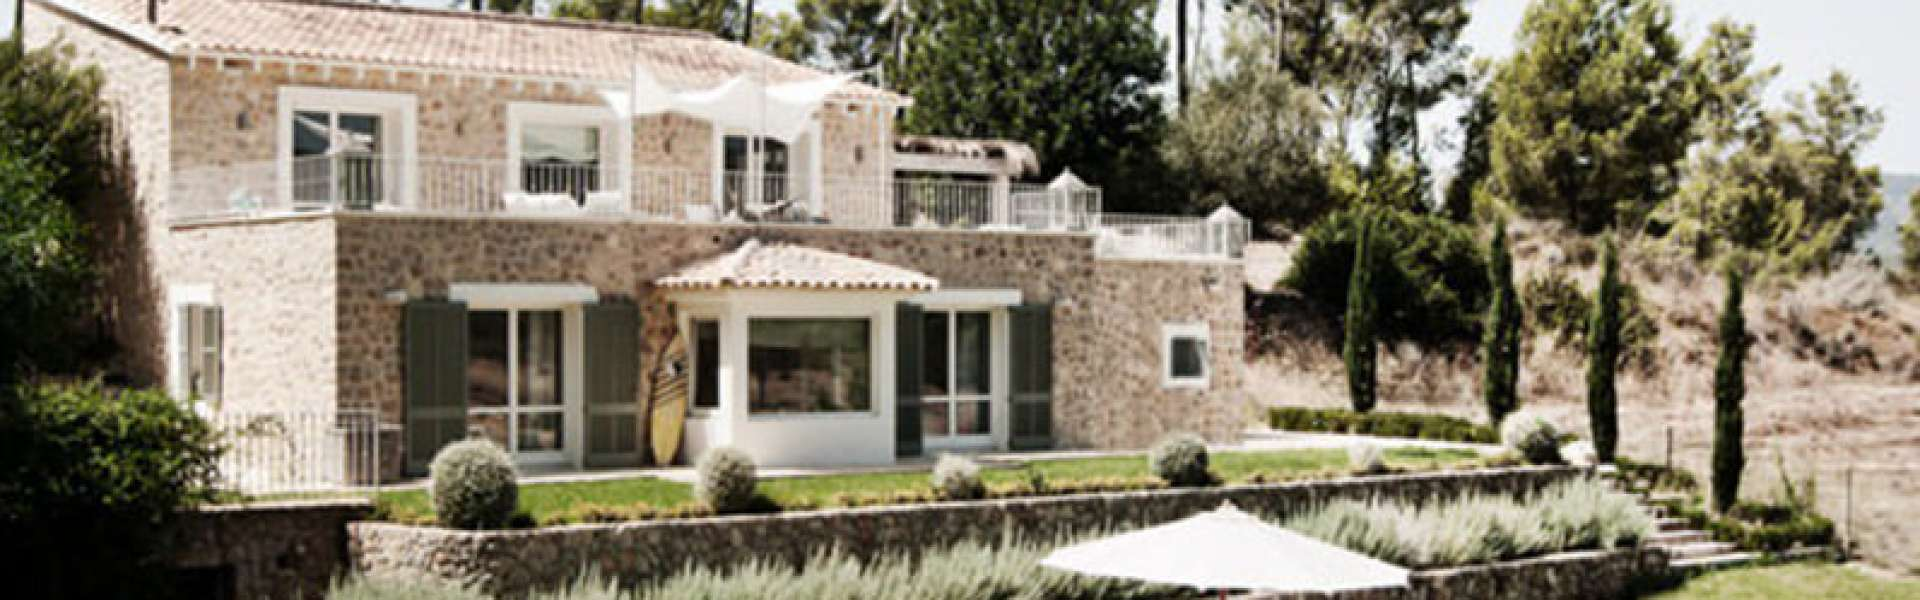 Calvia - Country house in modern style